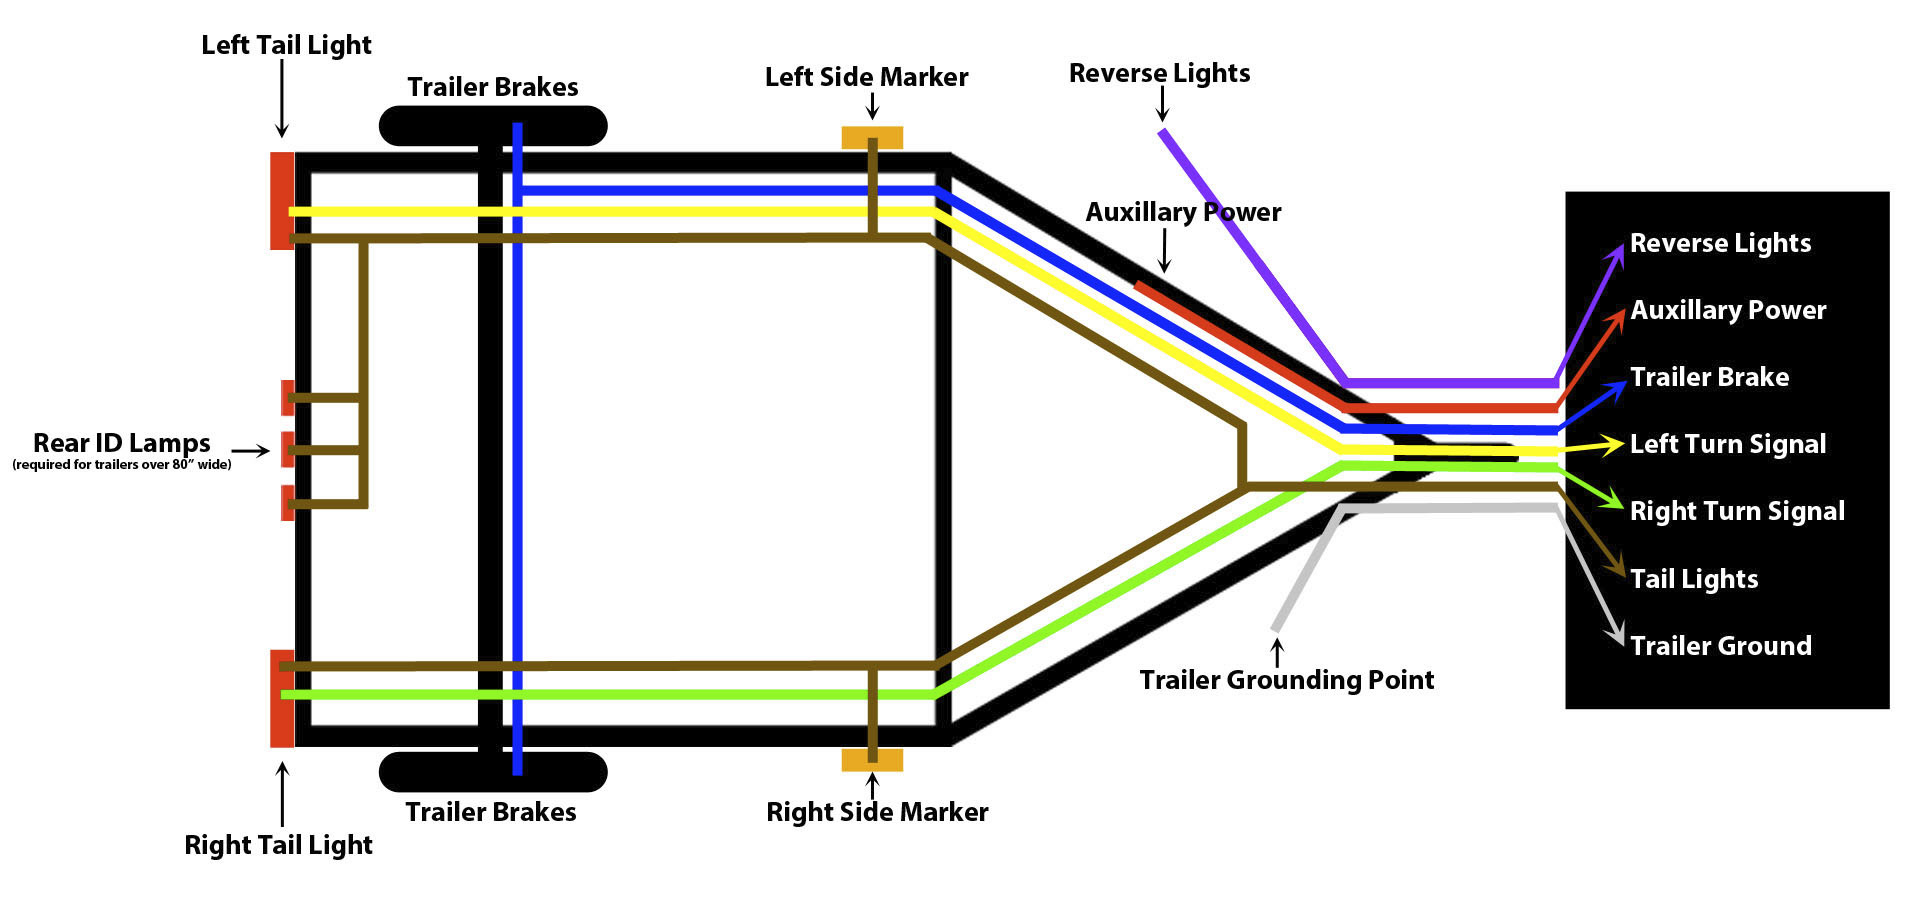 How To Wire Trailer Lights - Trailer Wiring Guide & Videos - Trailer Wiring Diagram 7 Wire